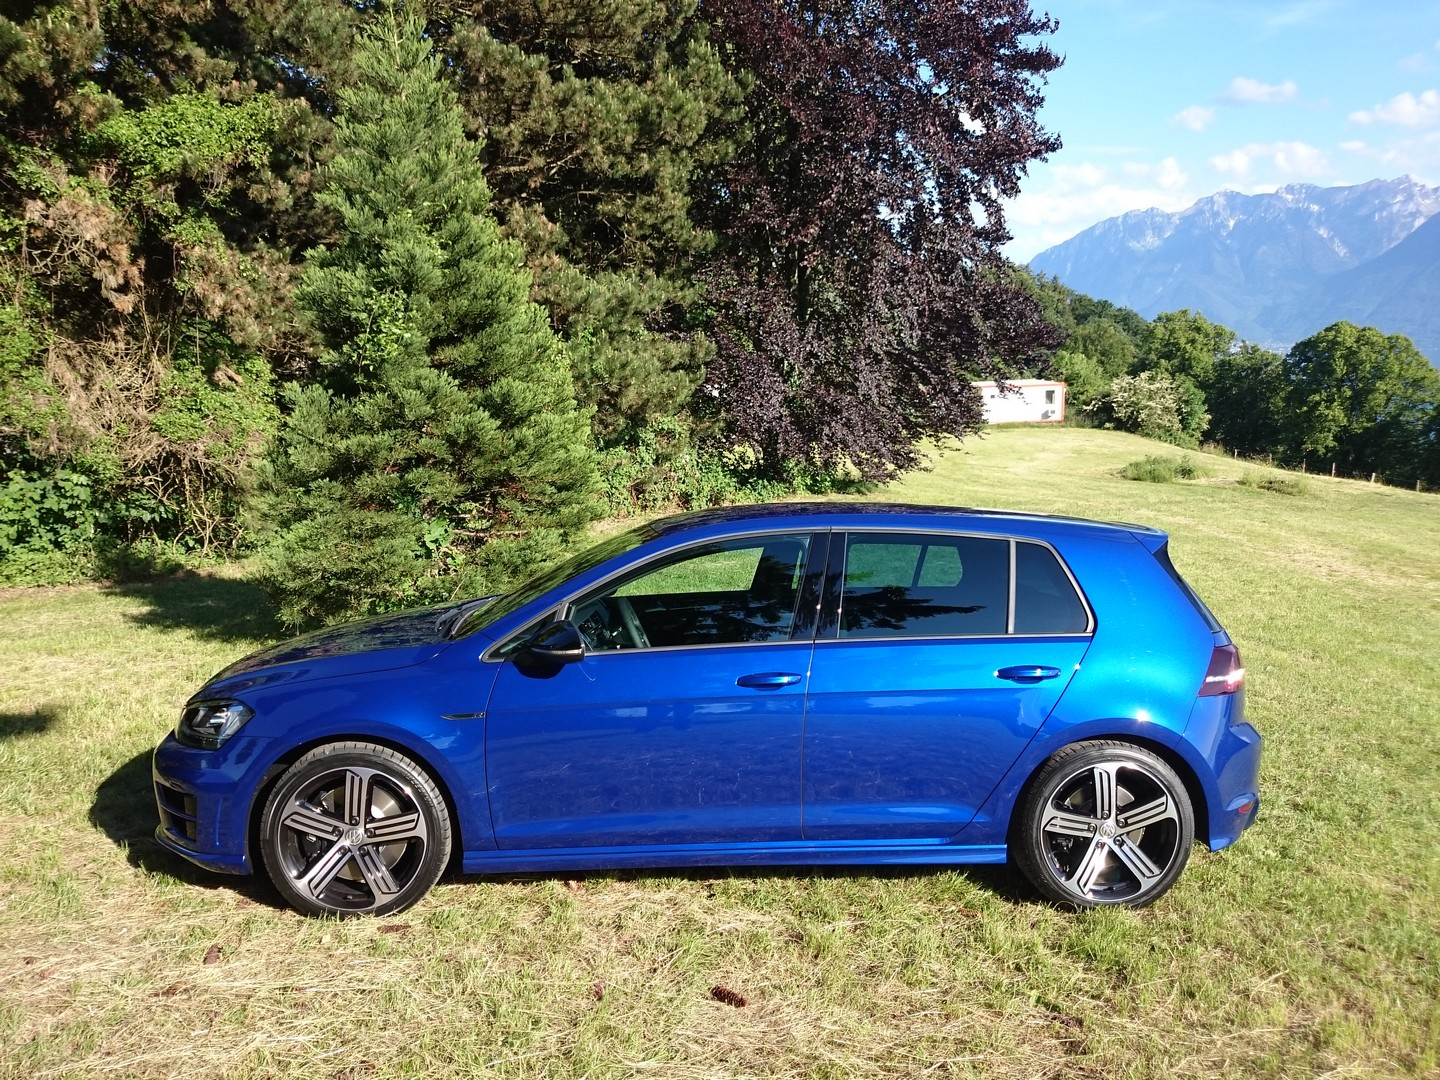 volkswagen golf vii r et r400 topic officiel page 69 golf volkswagen forum marques. Black Bedroom Furniture Sets. Home Design Ideas